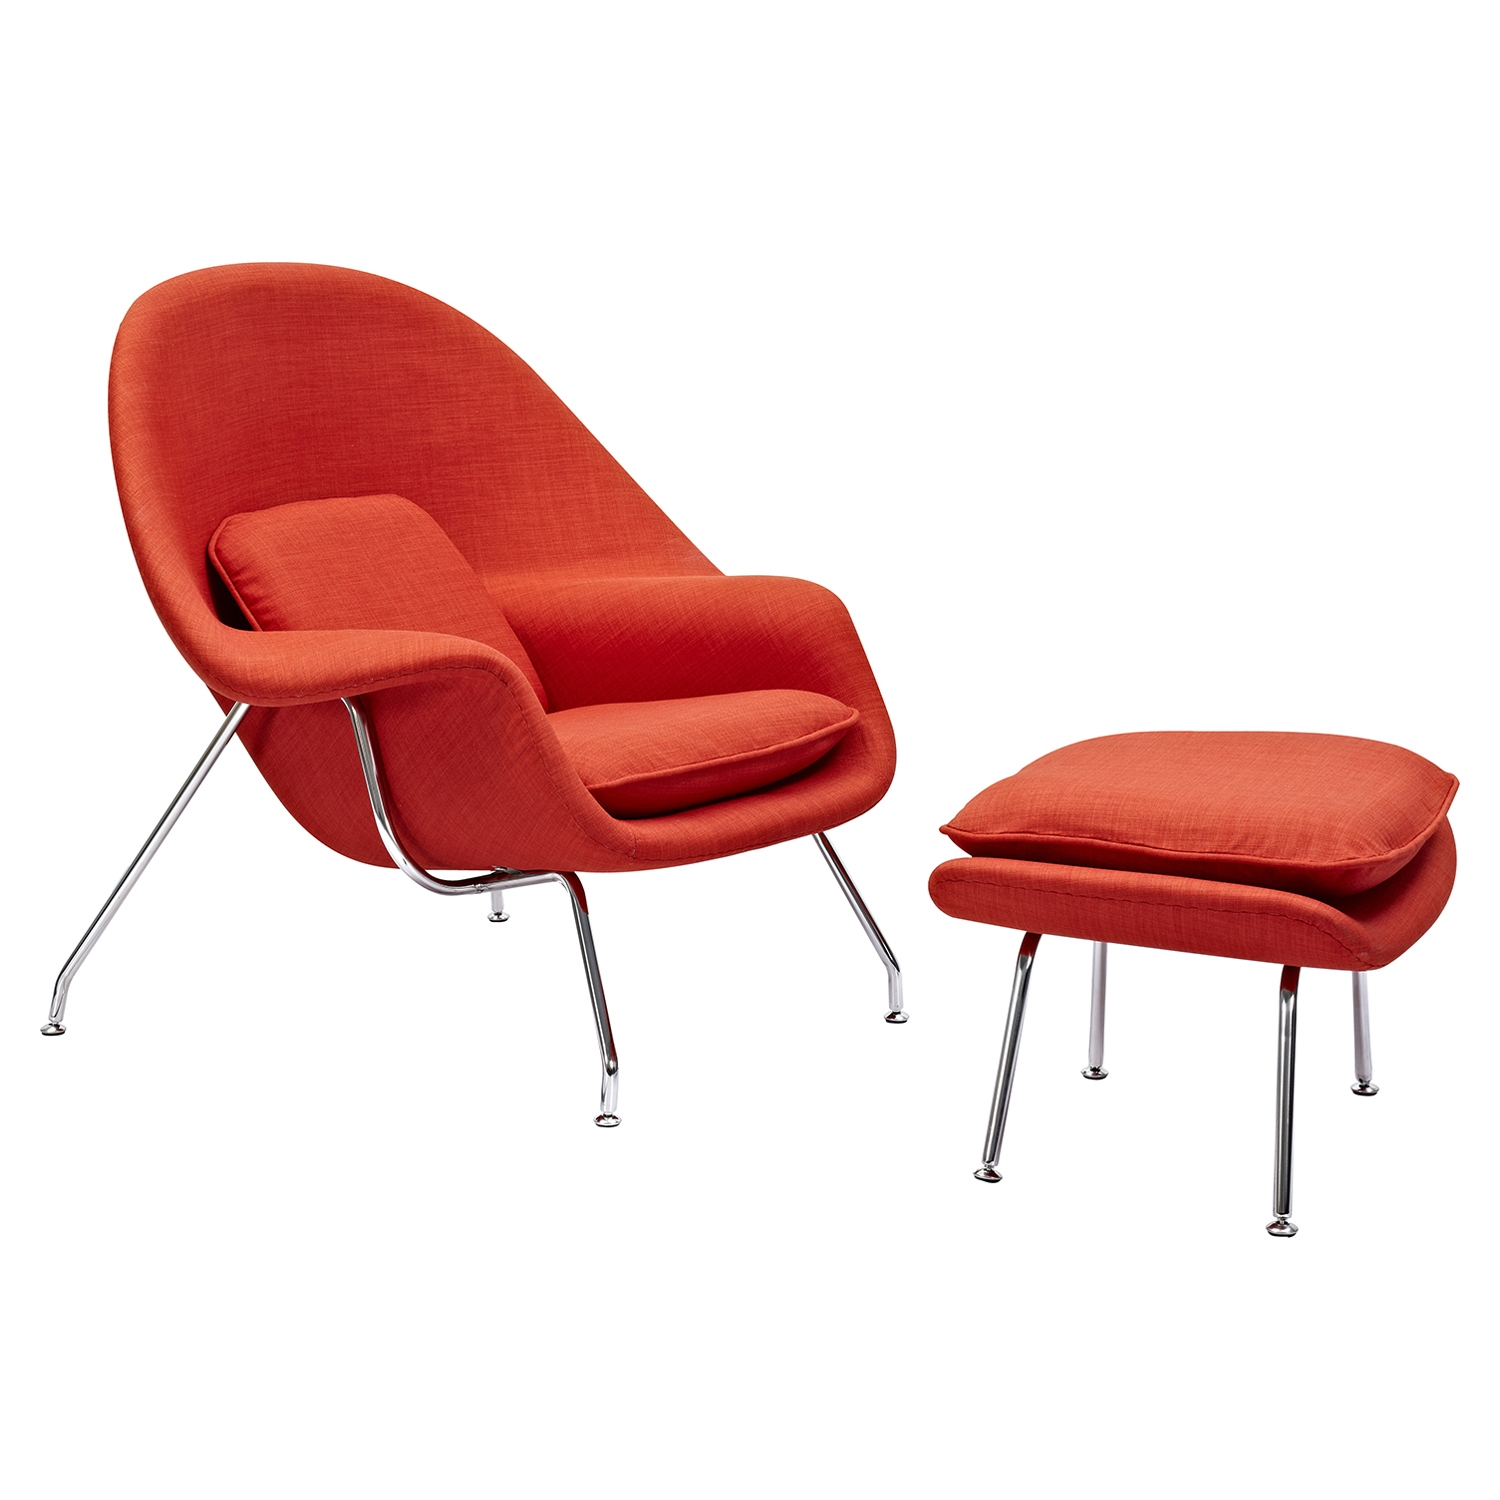 Saro Upholstered Chair - Lava Red